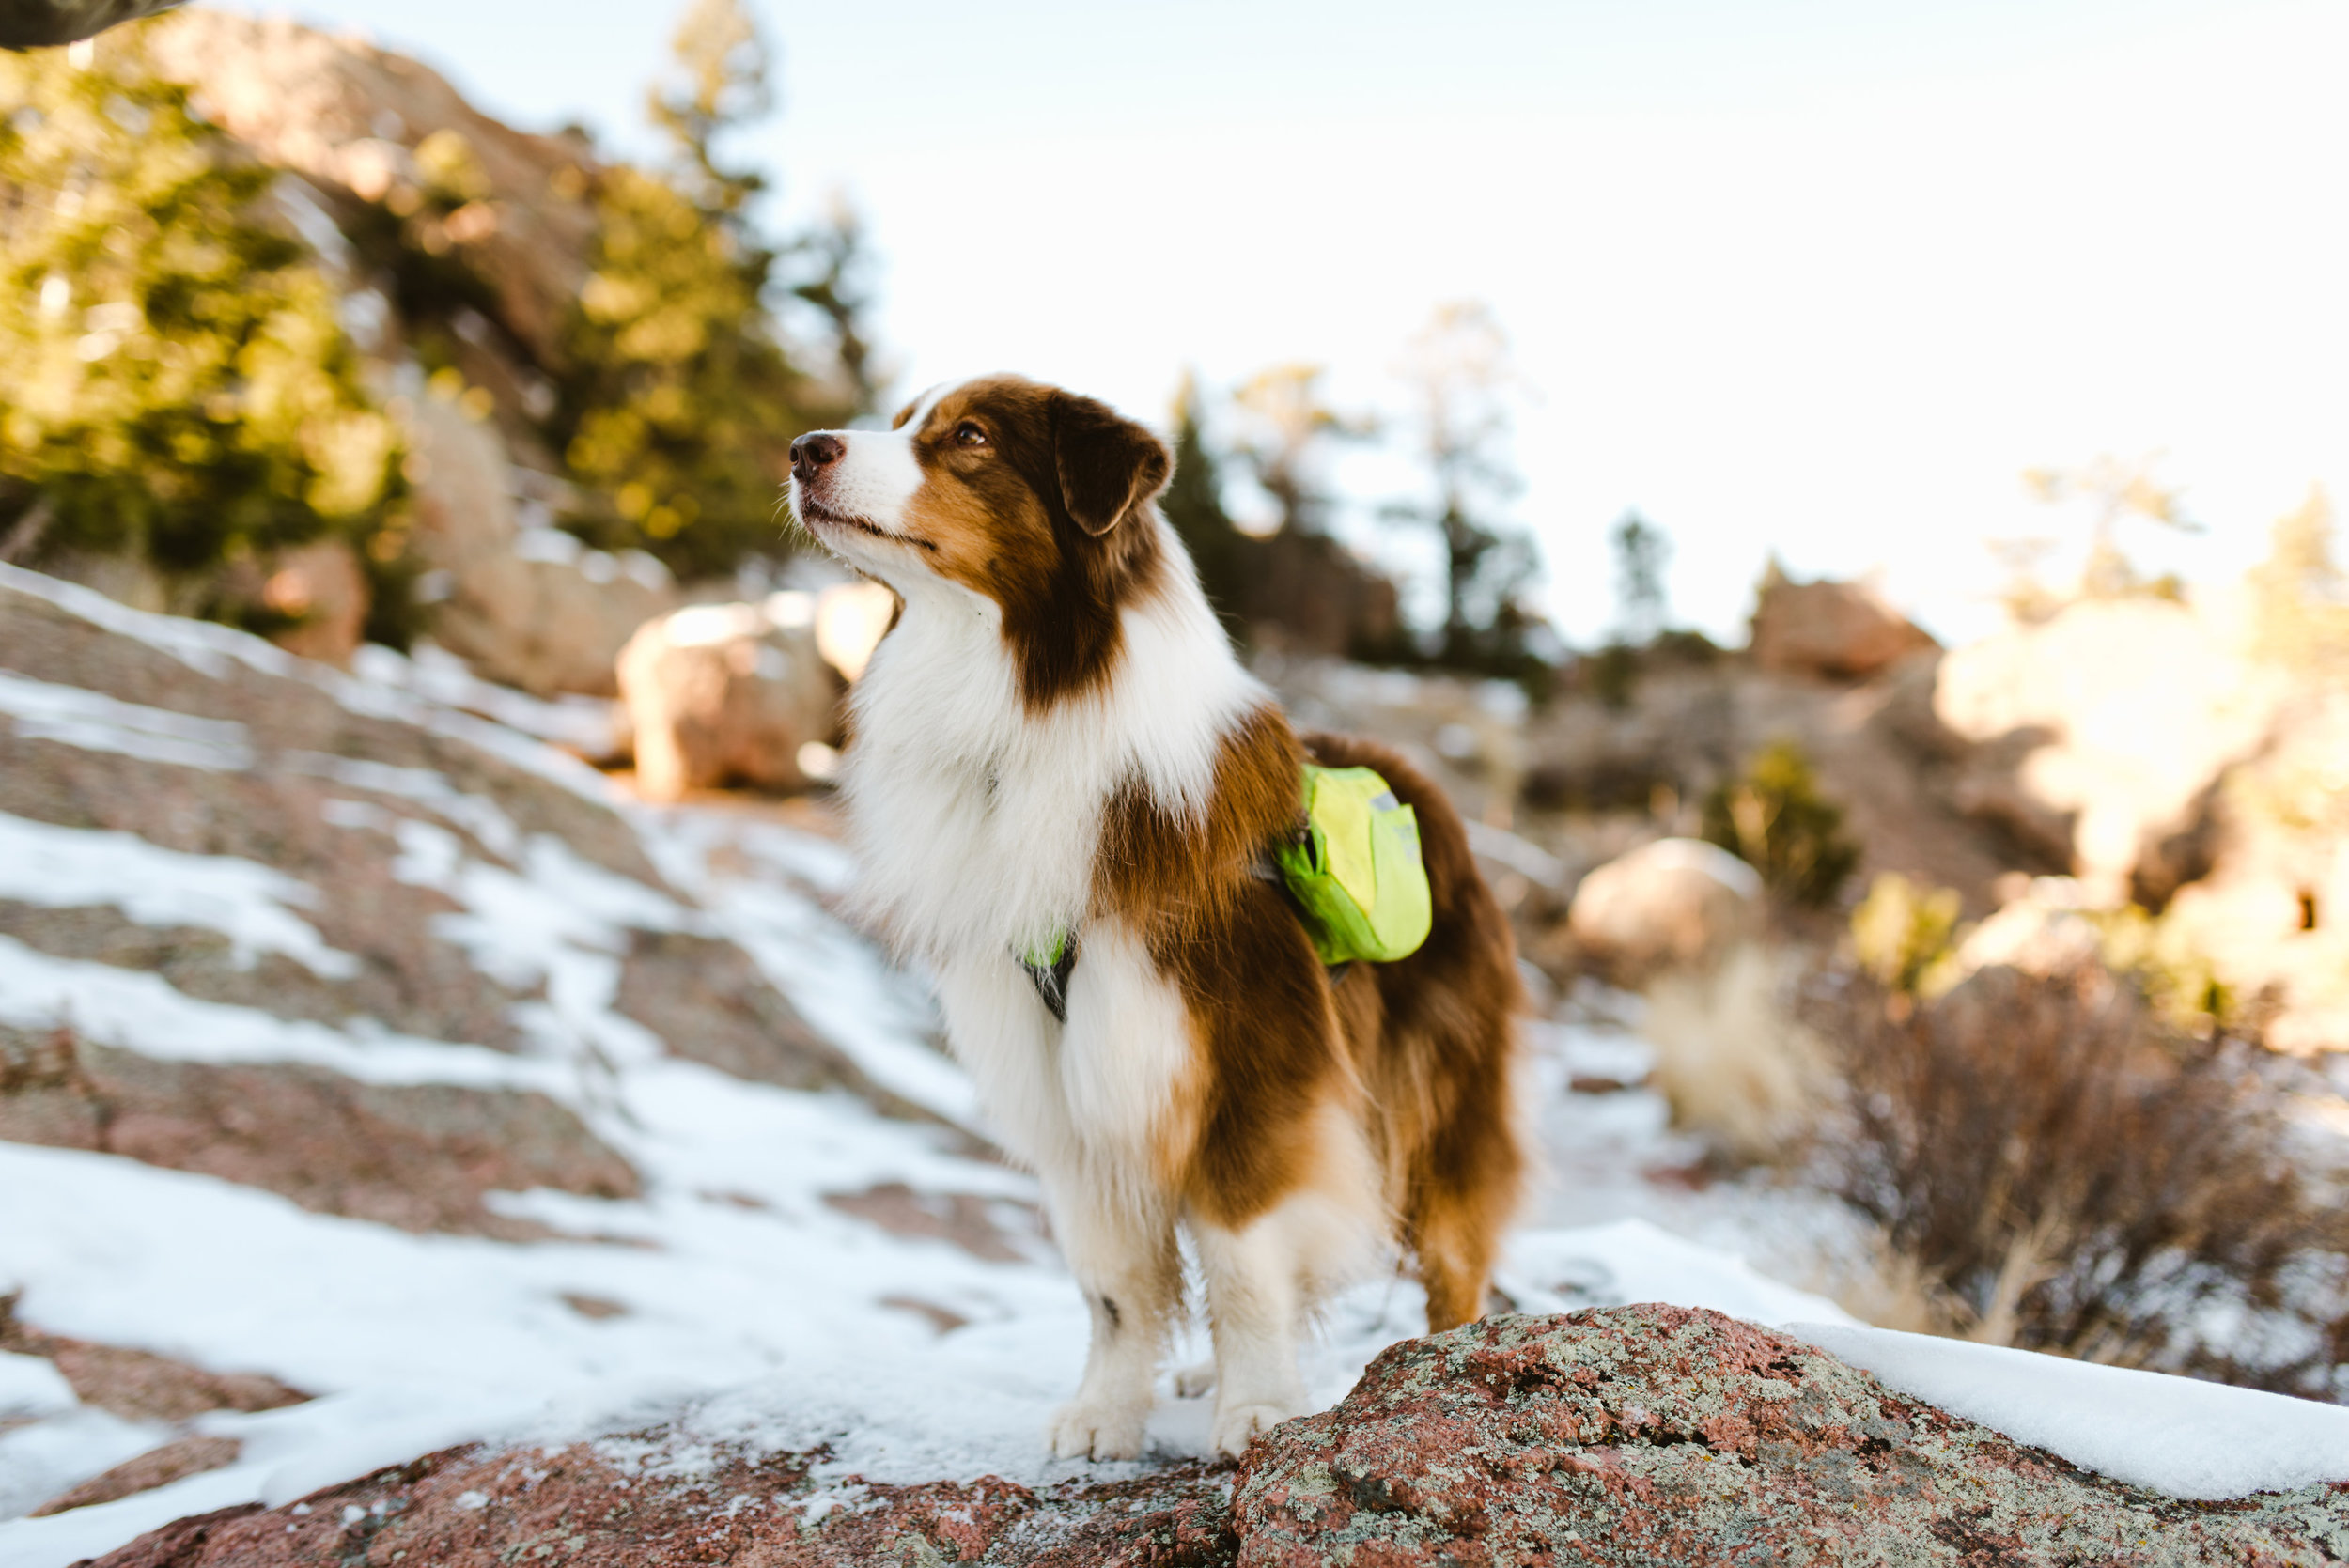 When on an adventure, our dogs easily leave the rest of the world behind and focus on the moment.  We do well to follow their lead and forget about our to-do lists, invasive technology, and other human issues that distract us from the experience.